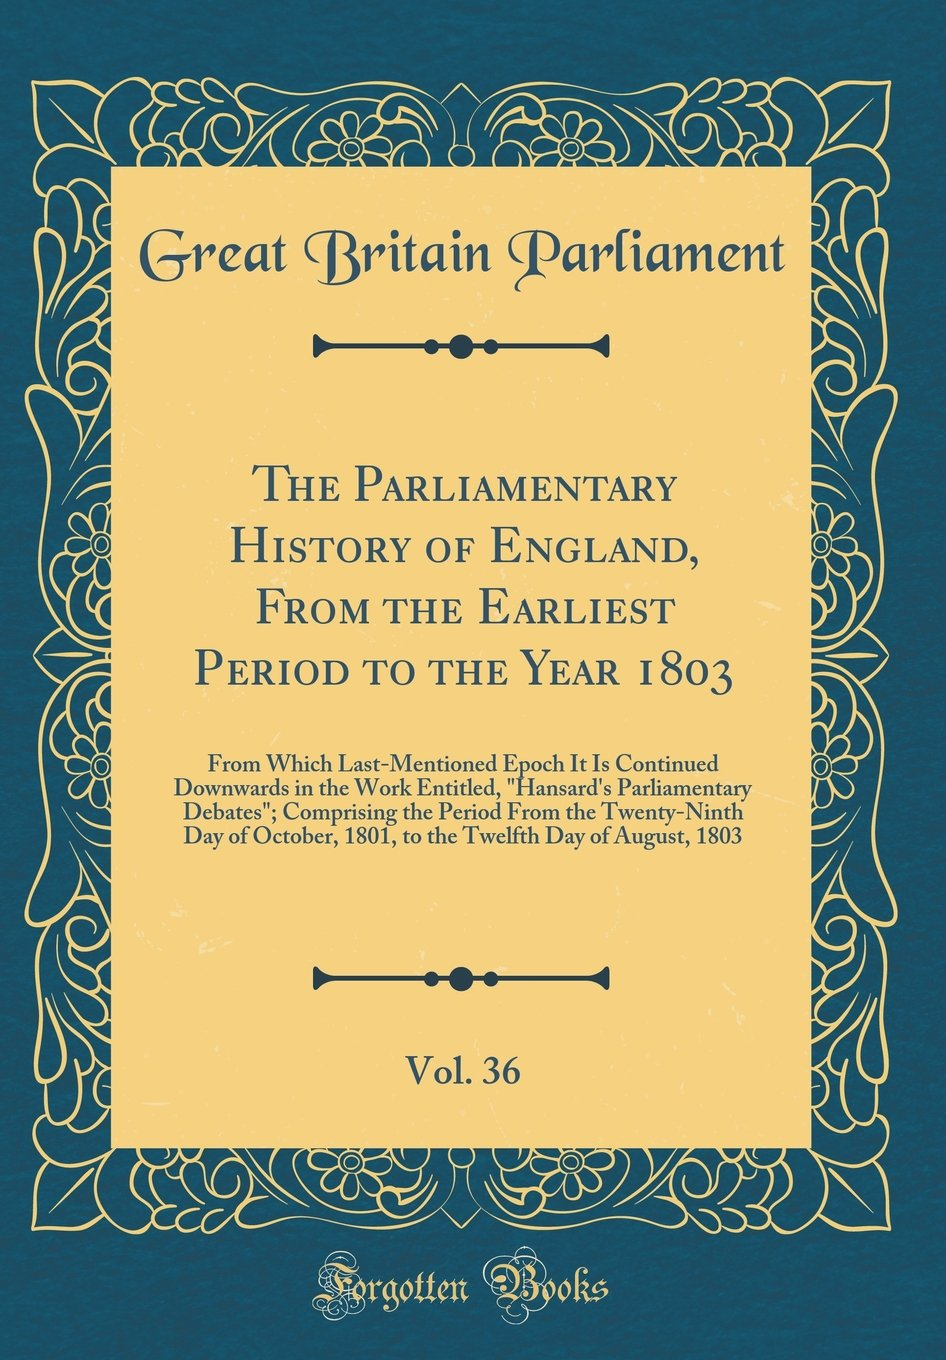 Read Online The Parliamentary History of England, From the Earliest Period to the Year 1803, Vol. 36: From Which Last-Mentioned Epoch It Is Continued Downwards in ... the Period From the Twenty-Ninth Day of PDF